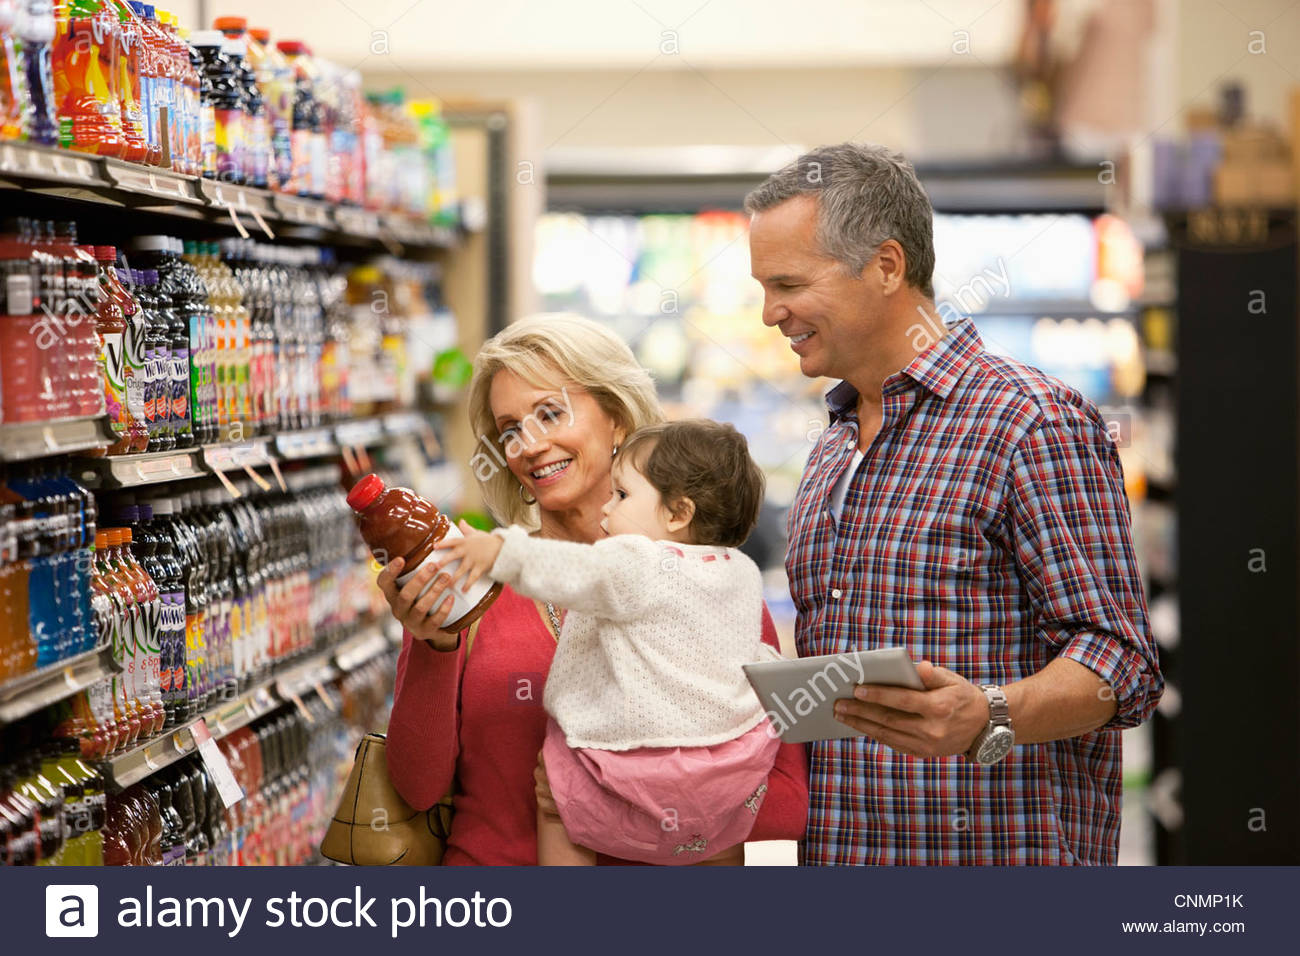 Family shopping for juice in supermarket - Stock Image